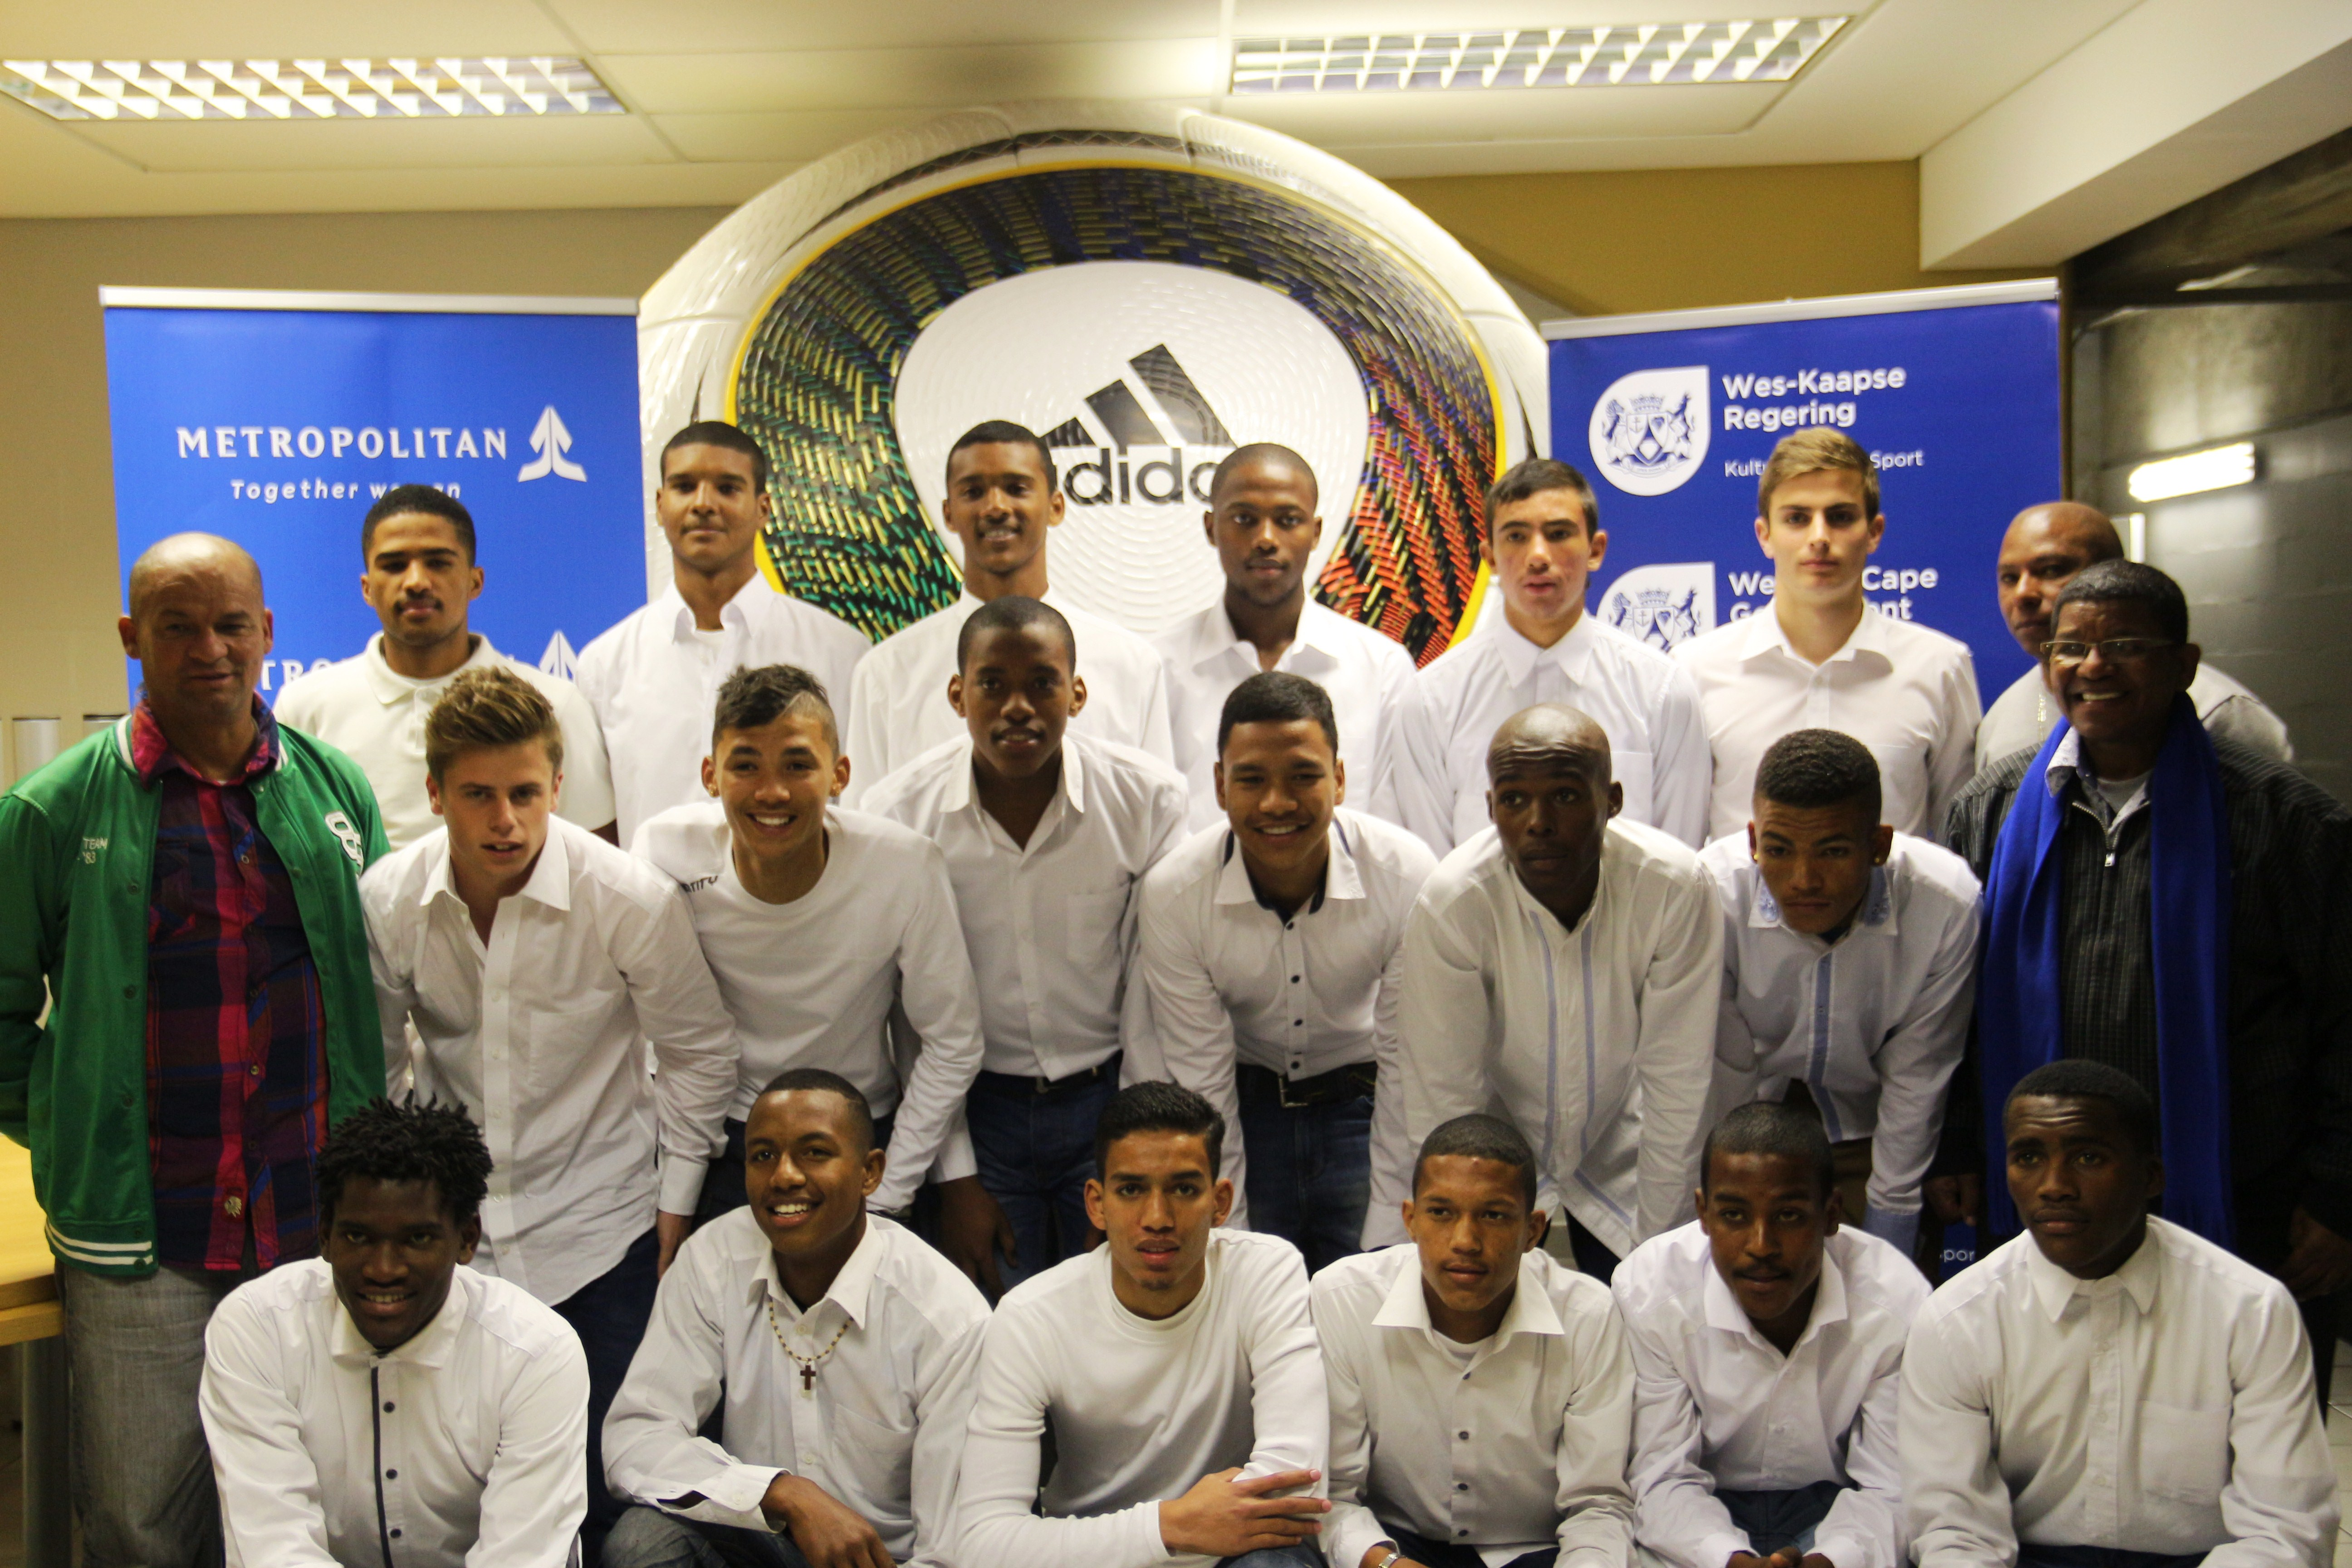 Team Western Cape along with their coaches and team manager